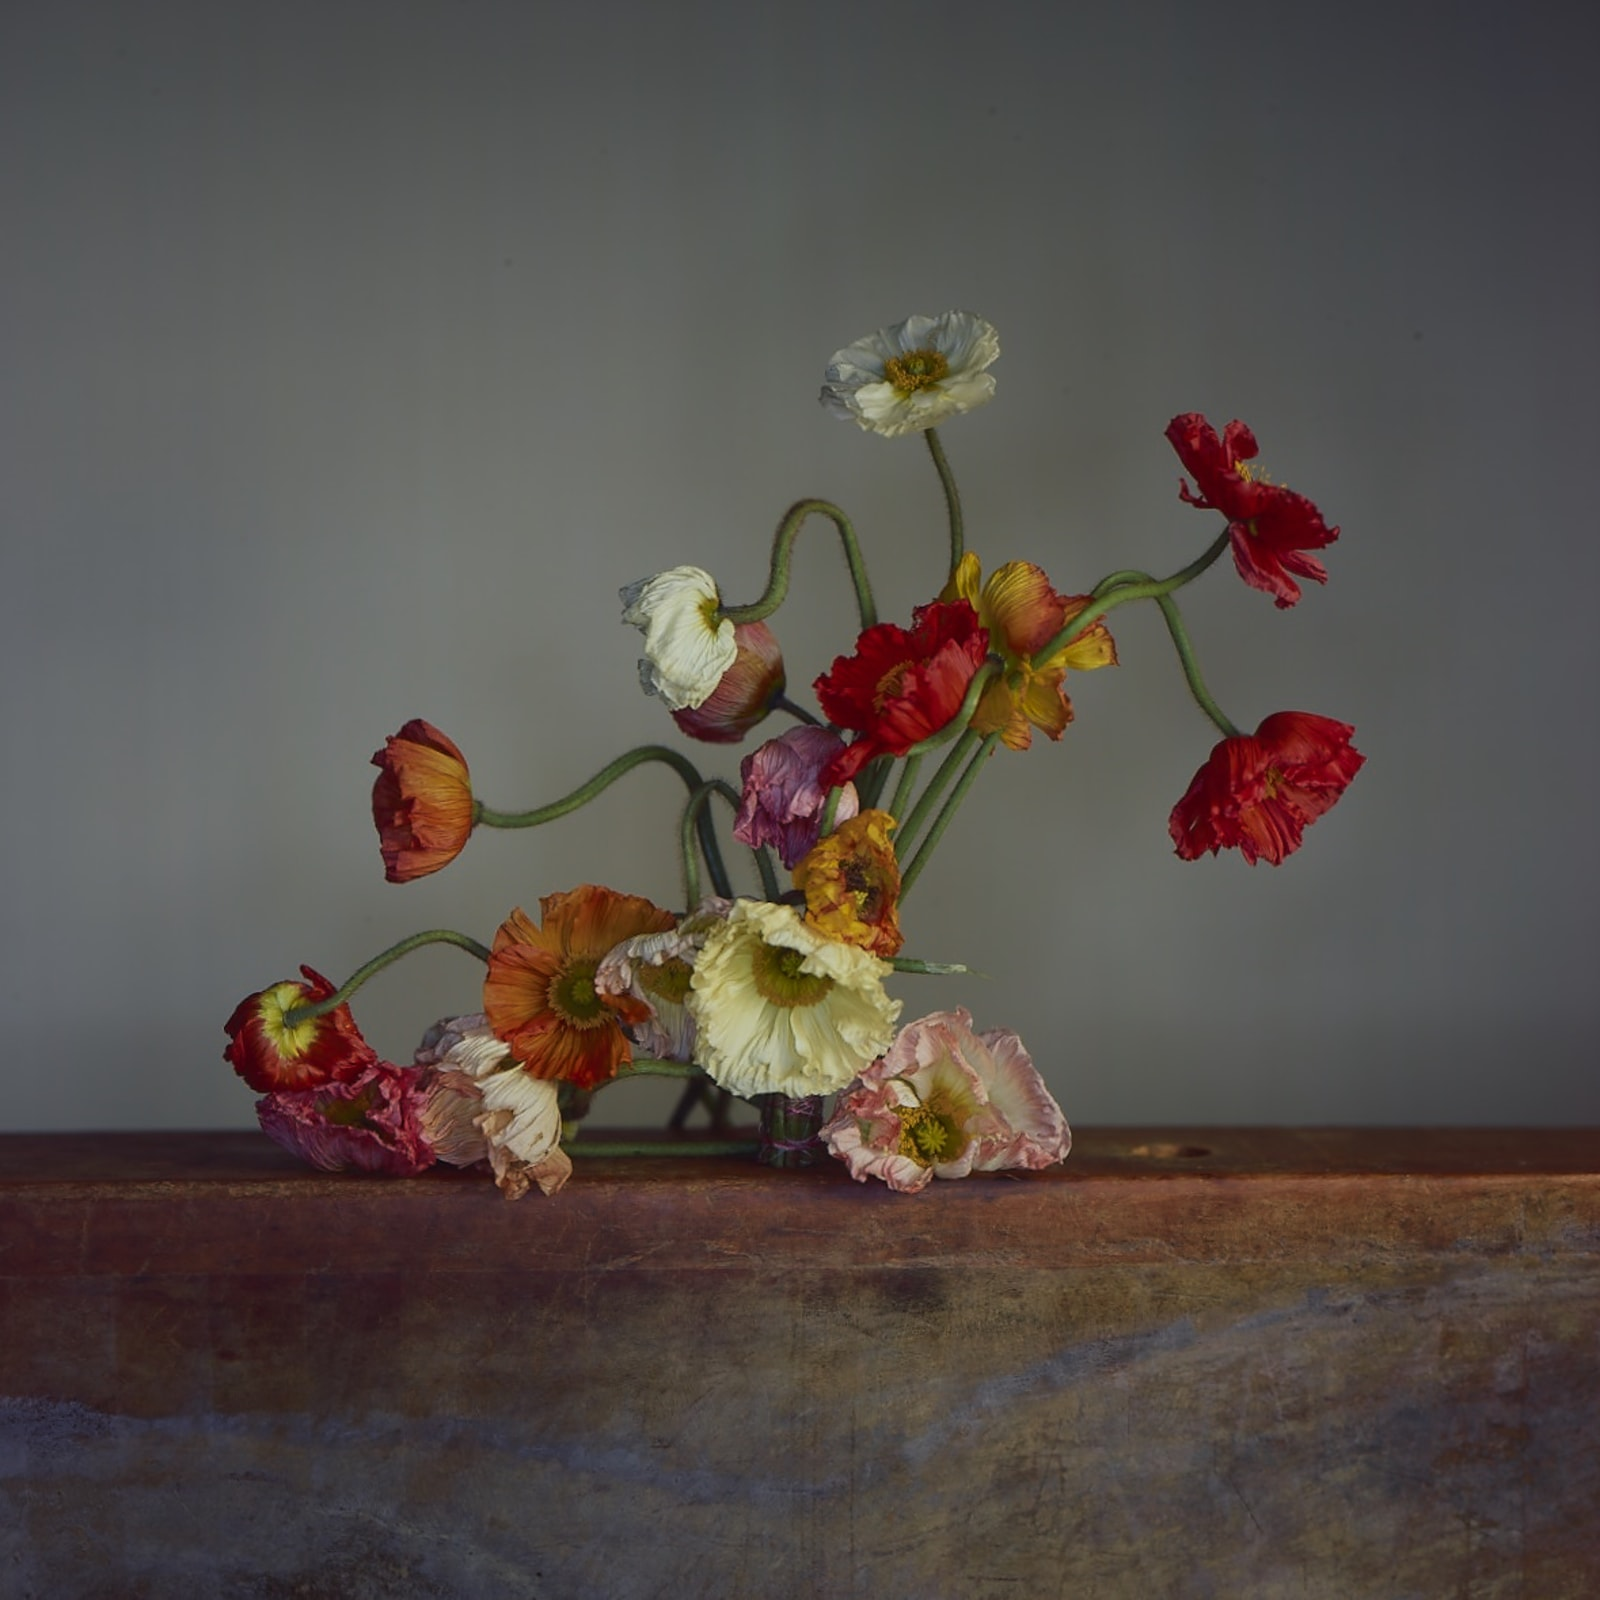 Richard Learoyd  Large Poppies, 2019  Unique Ilfochrome photograph  89.5 x 102 cm